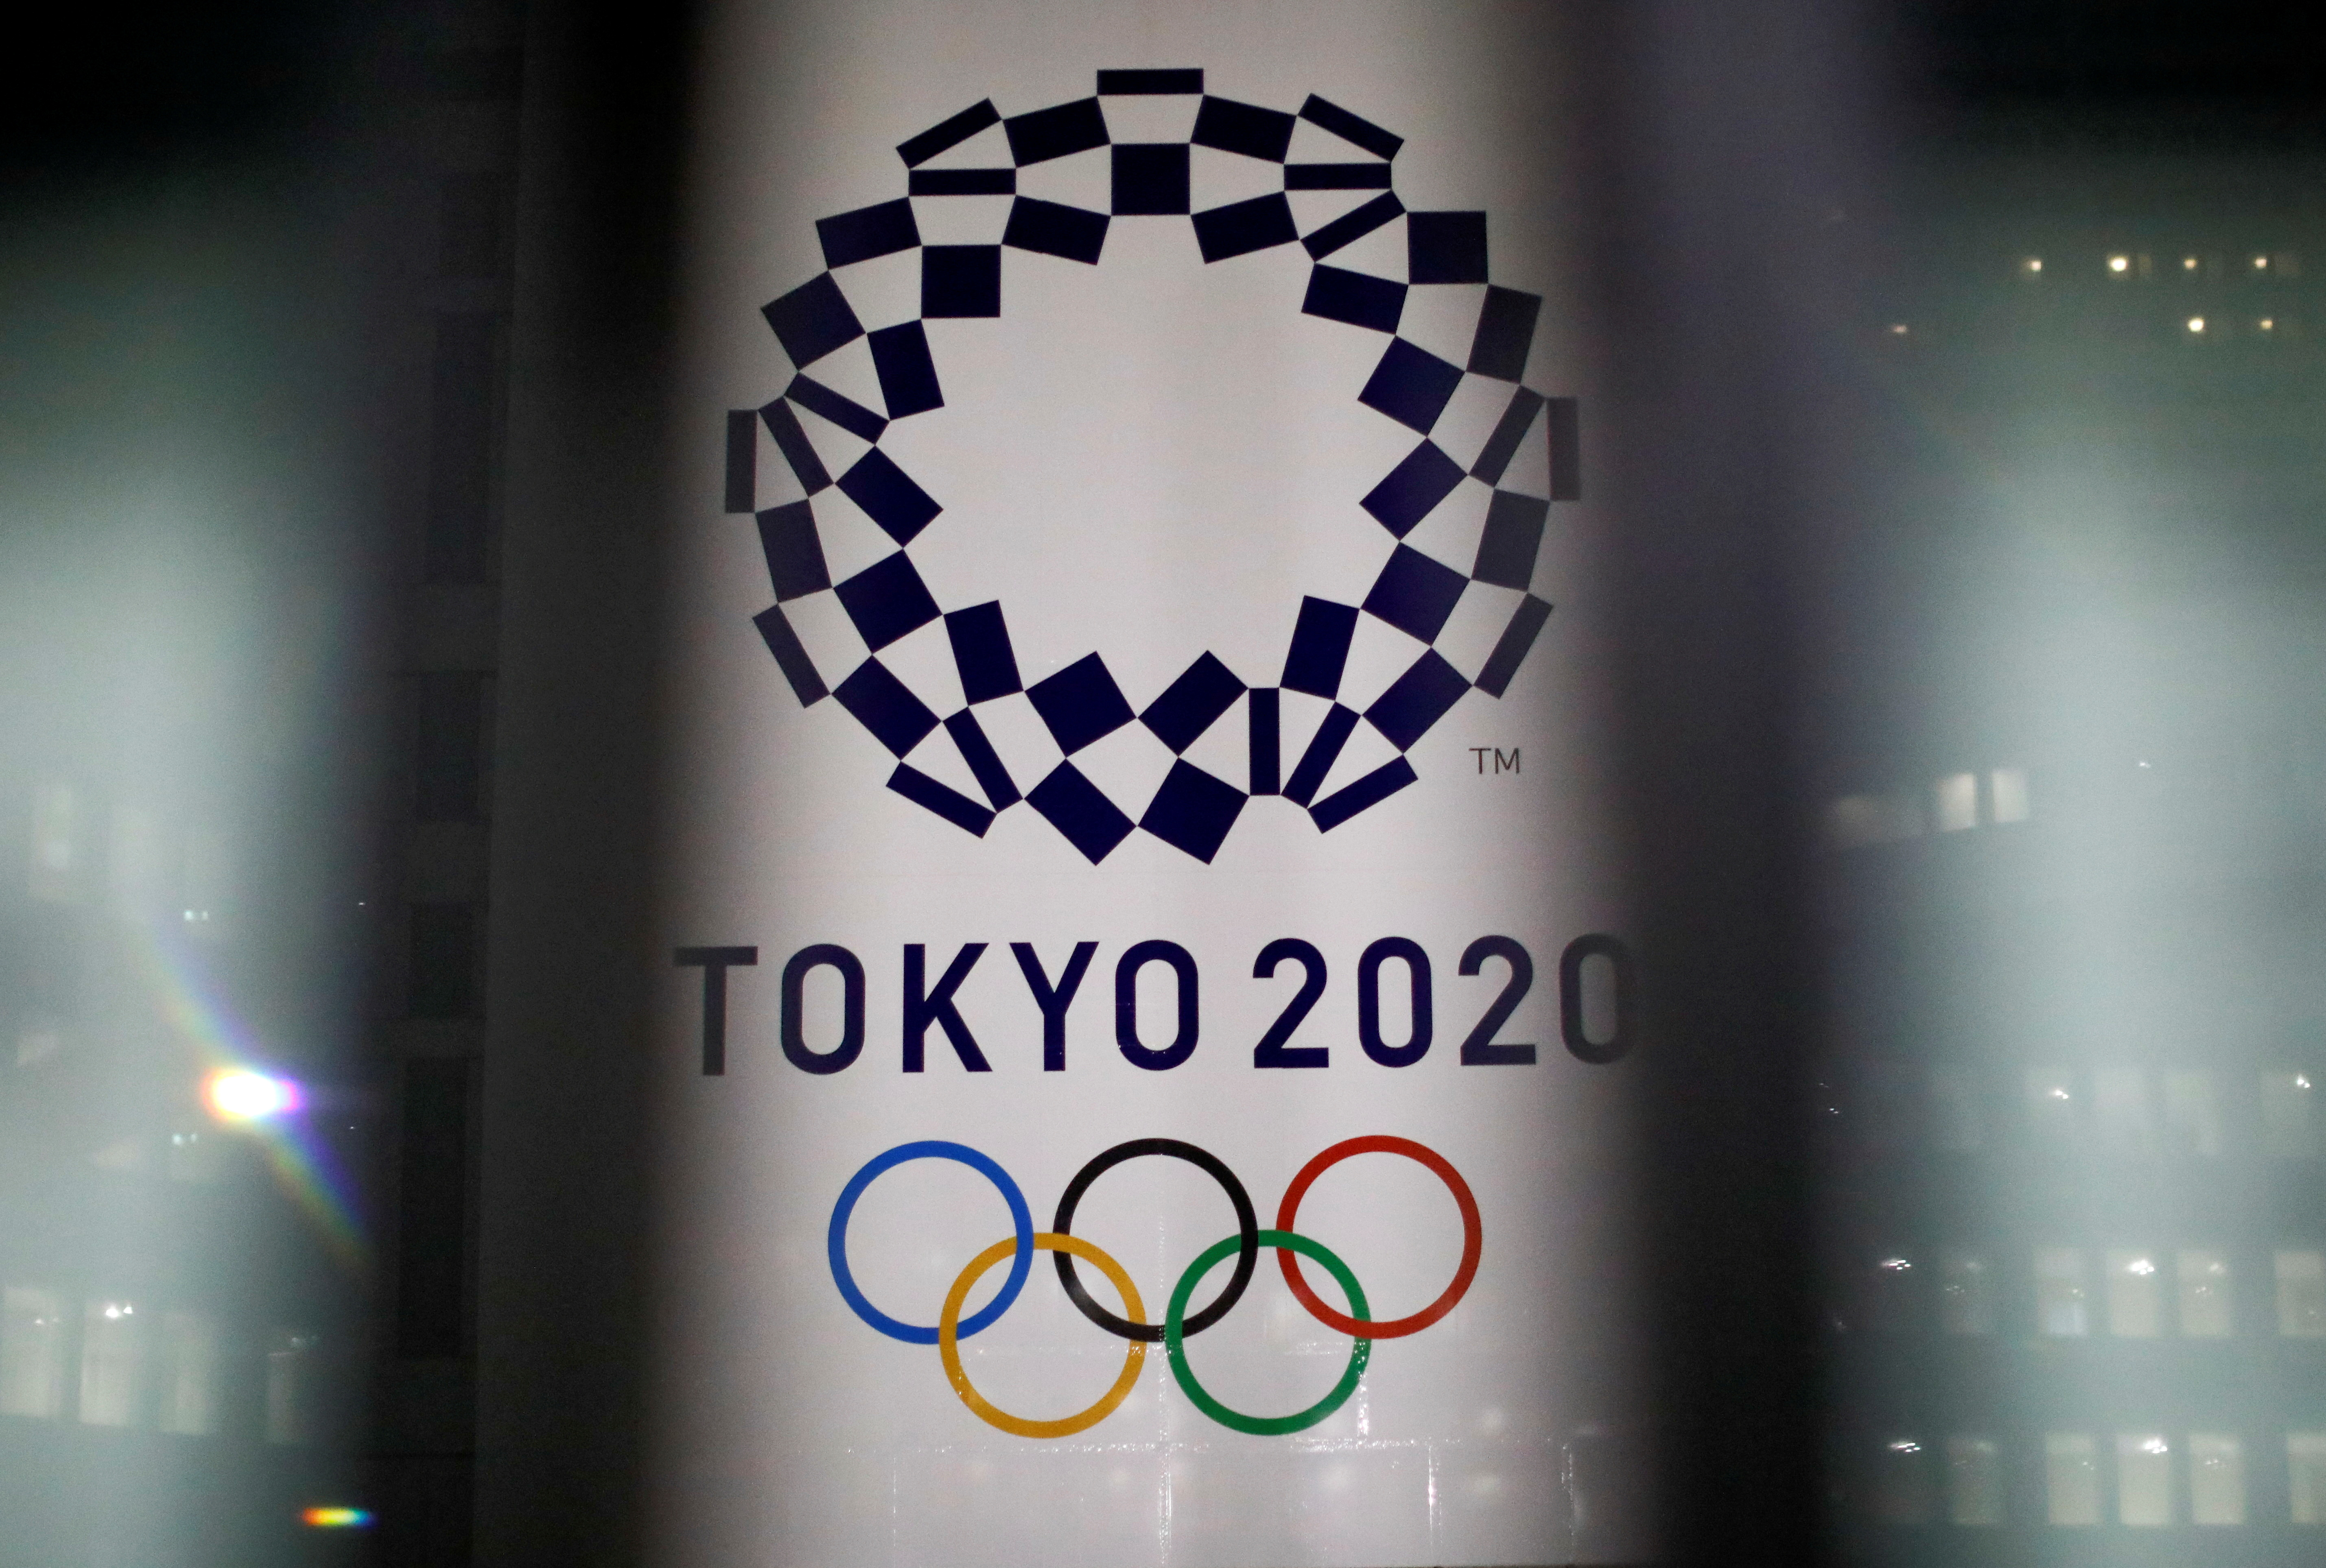 The logo of Tokyo 2020 Olympic Games that have been postponed to 2021 due to the coronavirus disease (COVID-19) outbreak, is seen through signboards, at Tokyo Metropolitan Government Office building in Tokyo, Japan January 22, 2021. REUTERS/Issei Kato/File Photo